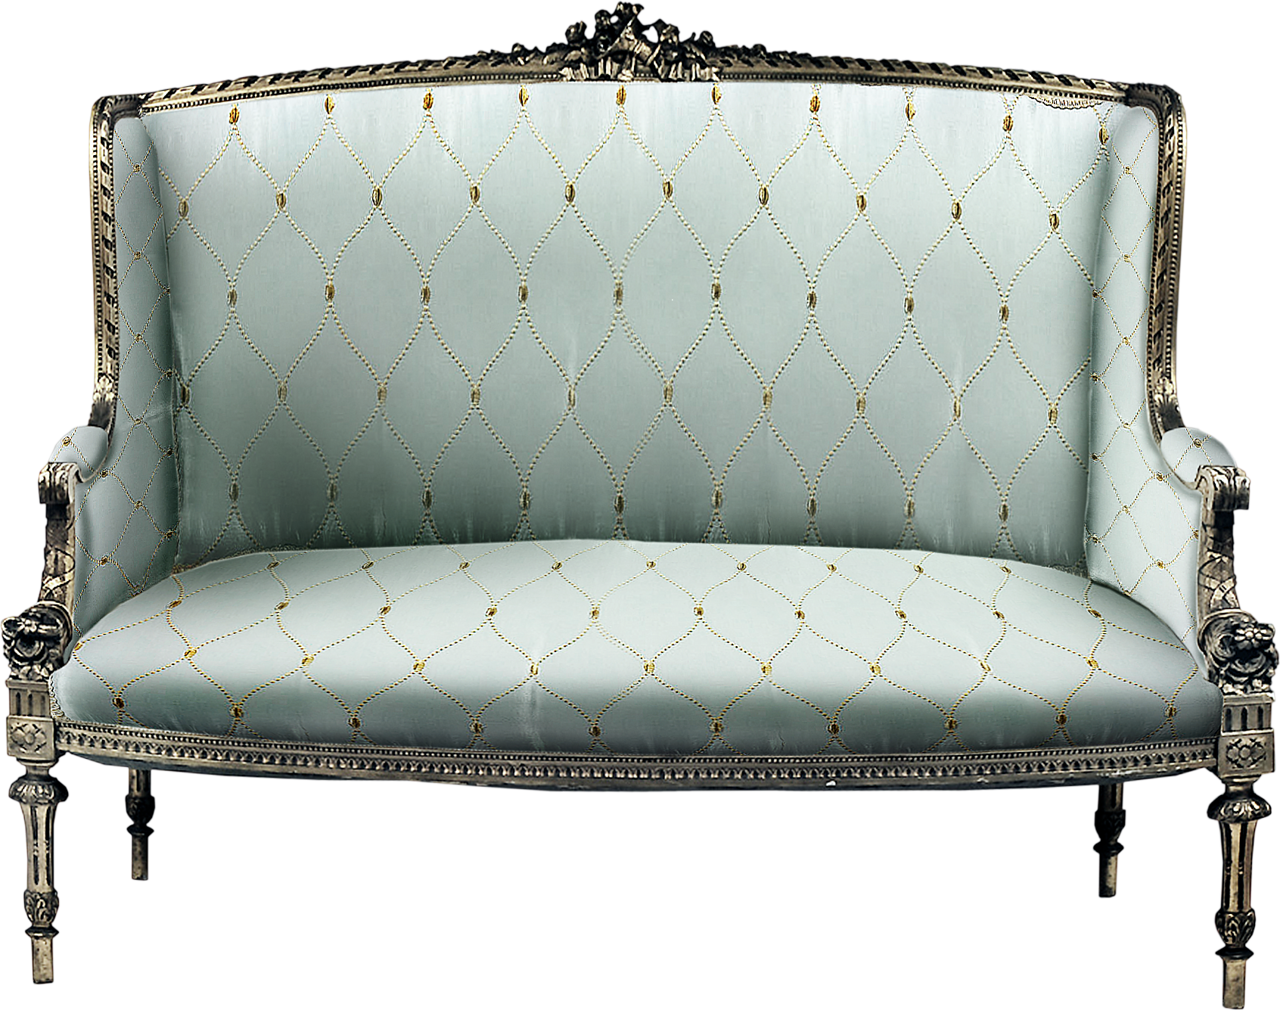 Ldavi mousemasque settee png. Couch clipart house furniture